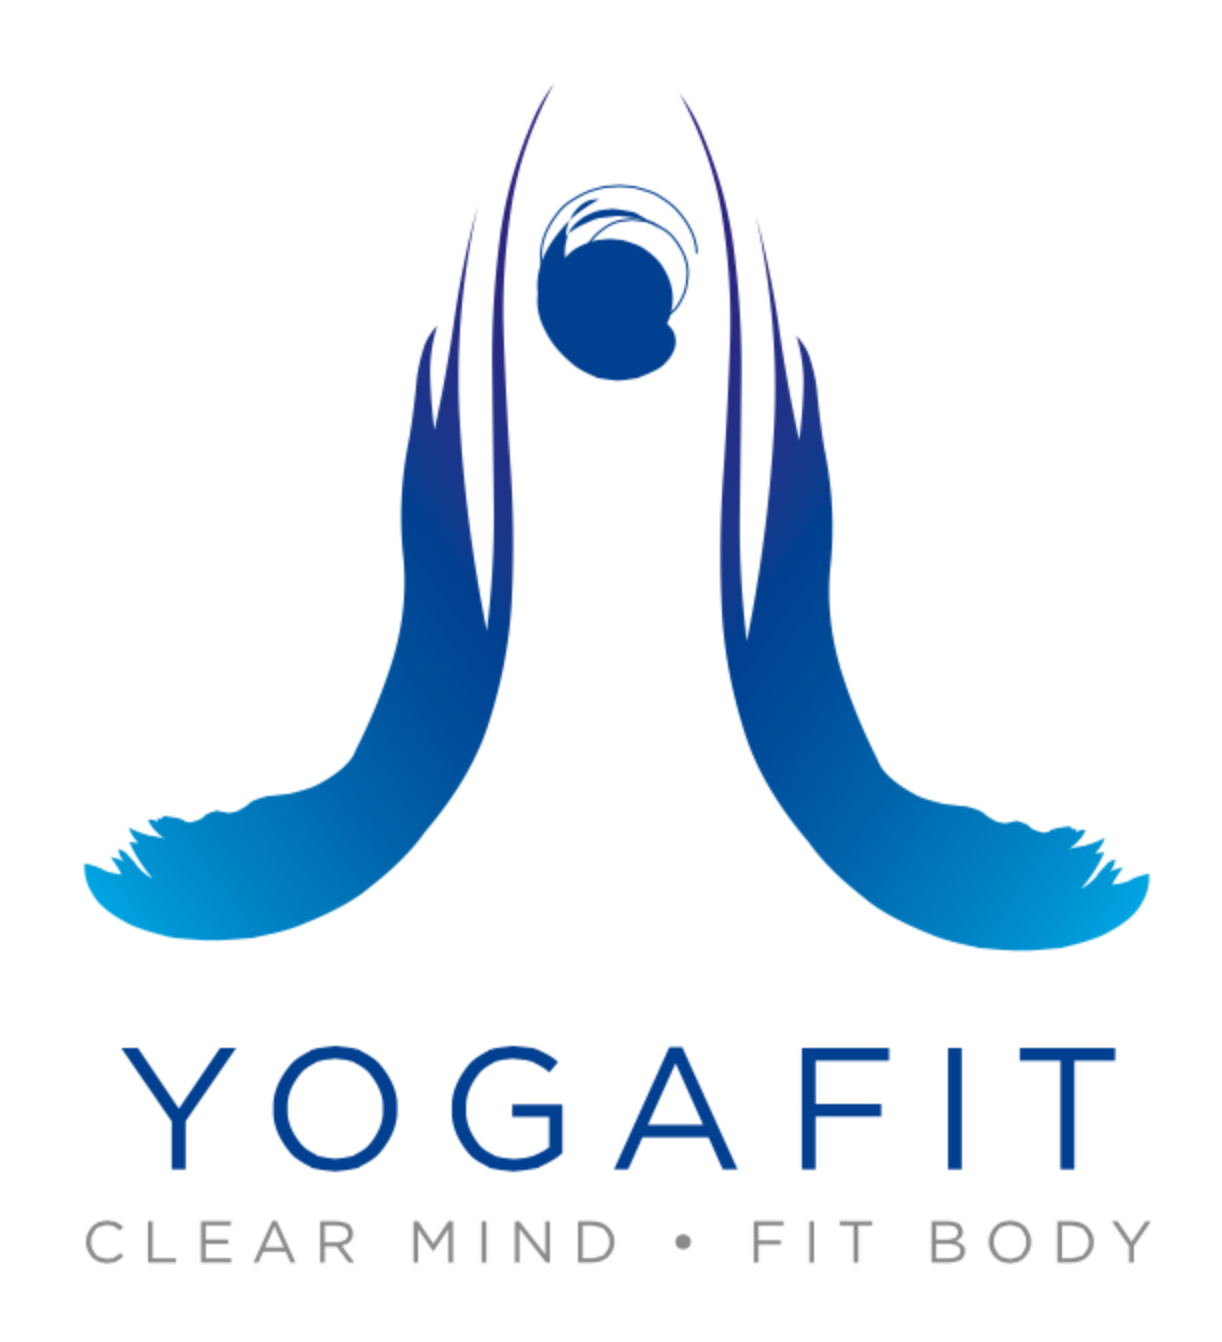 YogaFit. Yoga and Fitness on Sydney's Northern Beaches.